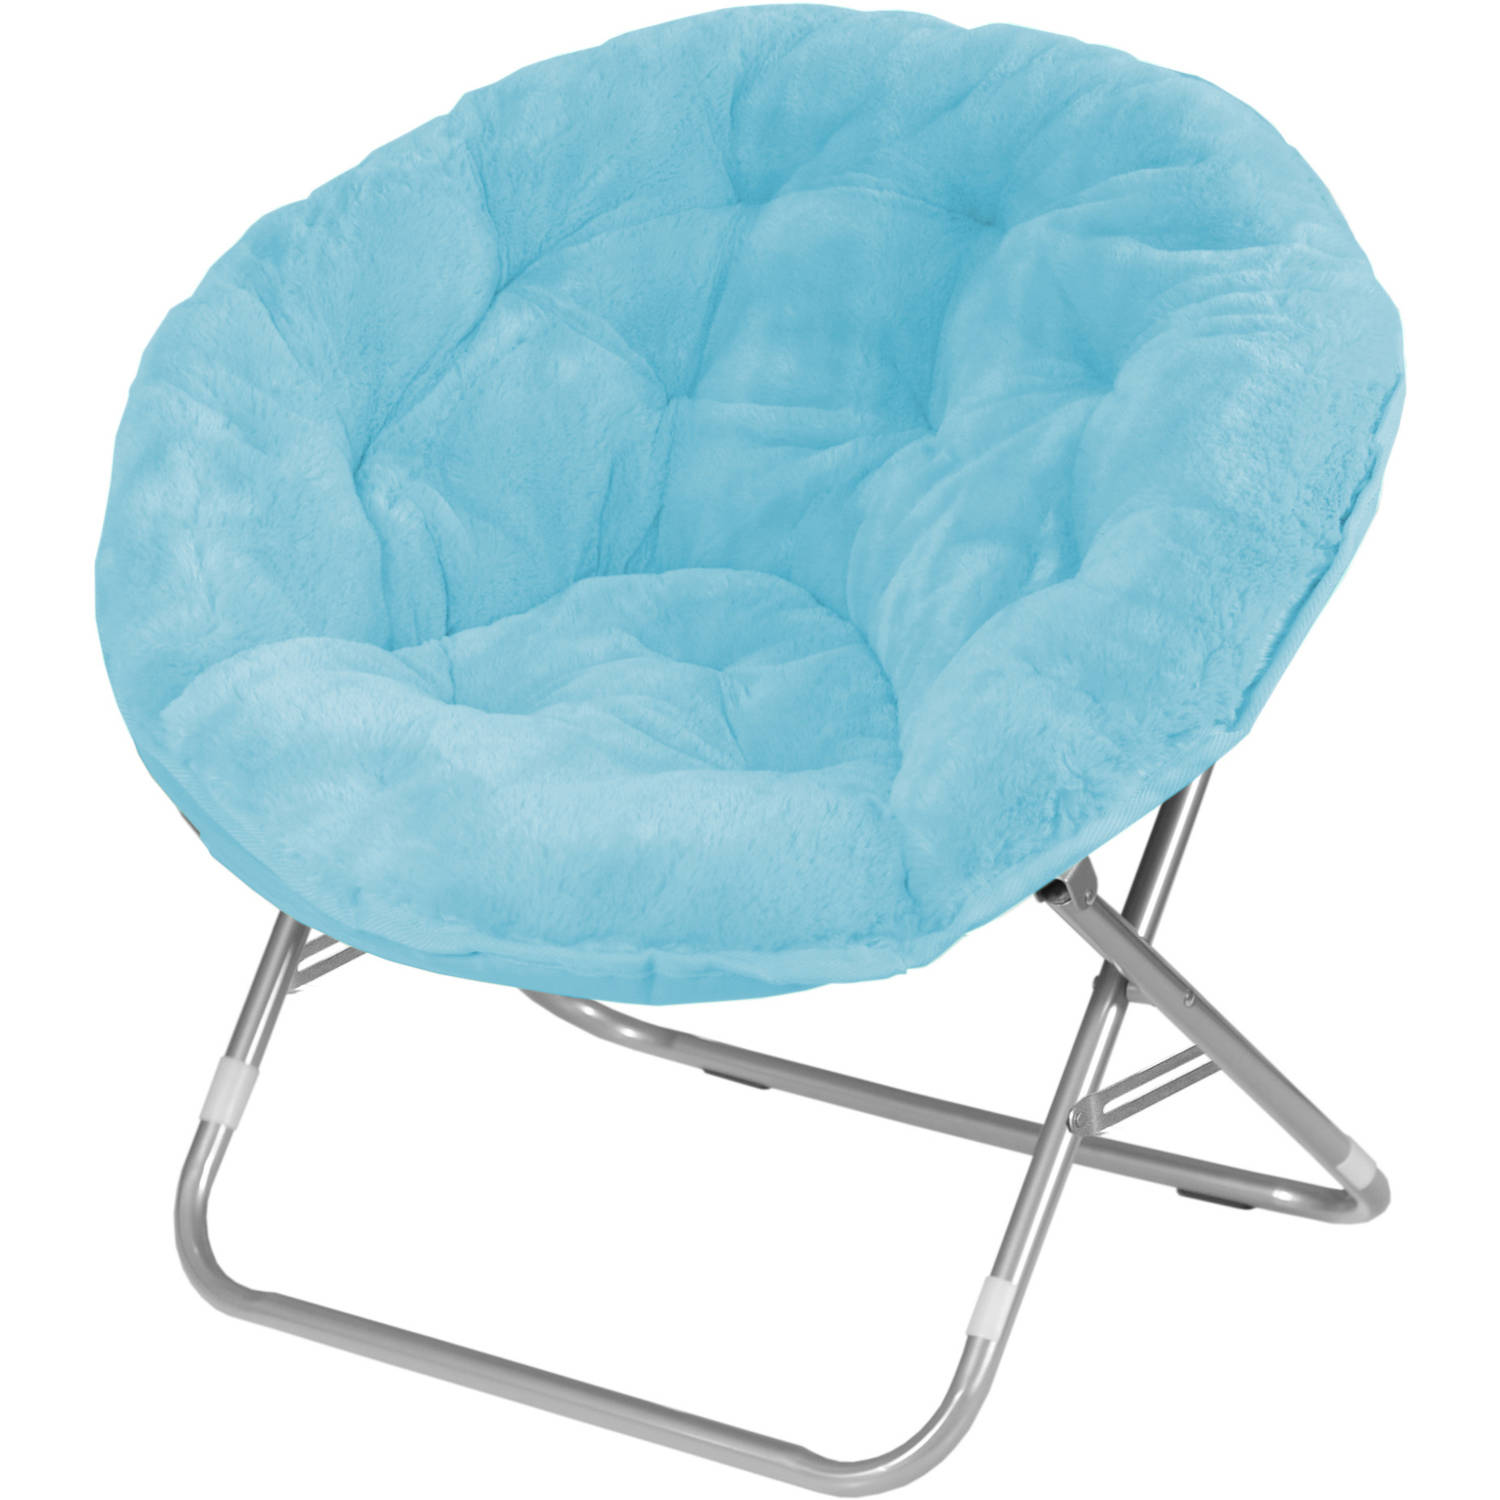 Dorm Chairs Faux Fur Saucer Moon Chair Dorm Room Lounging Furniture